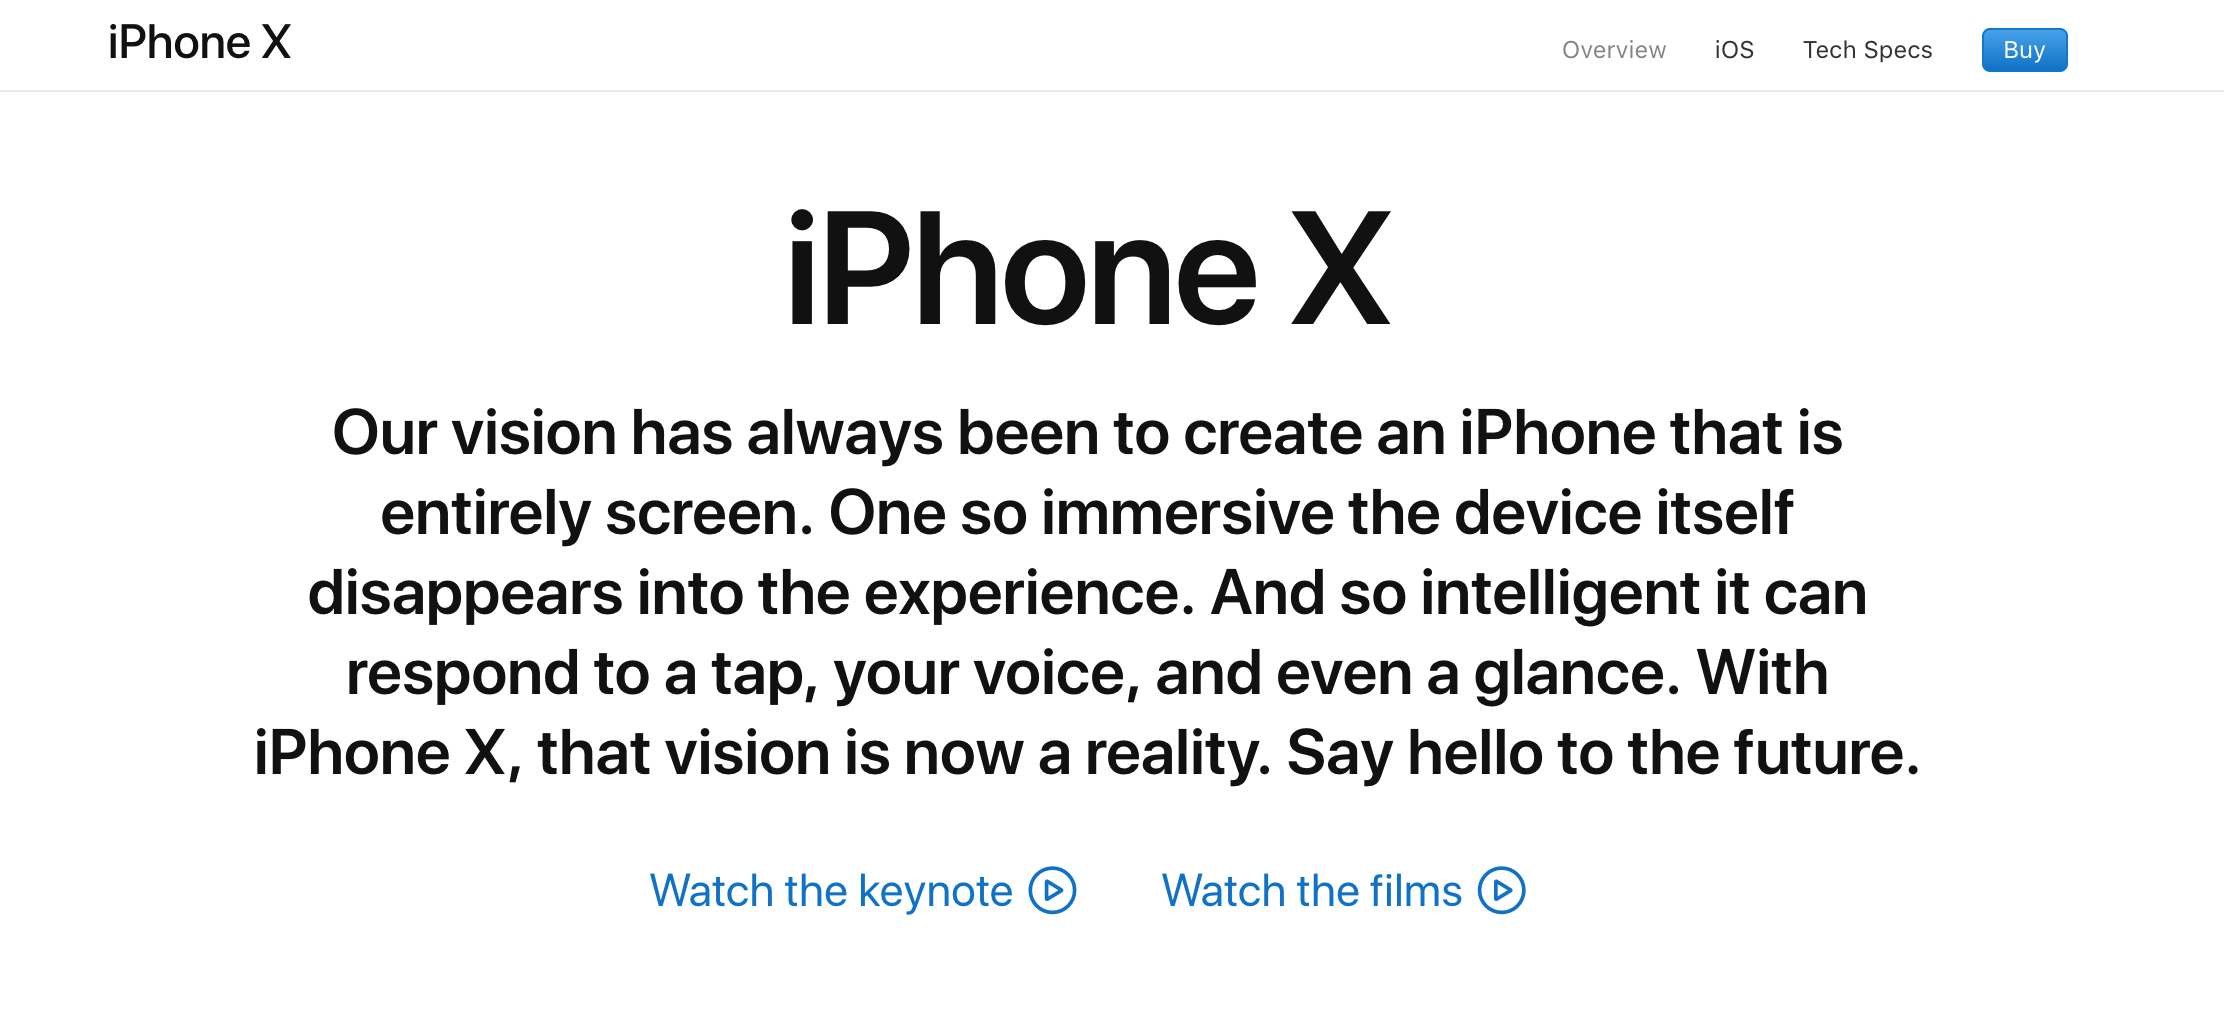 iPhone X Product Copy